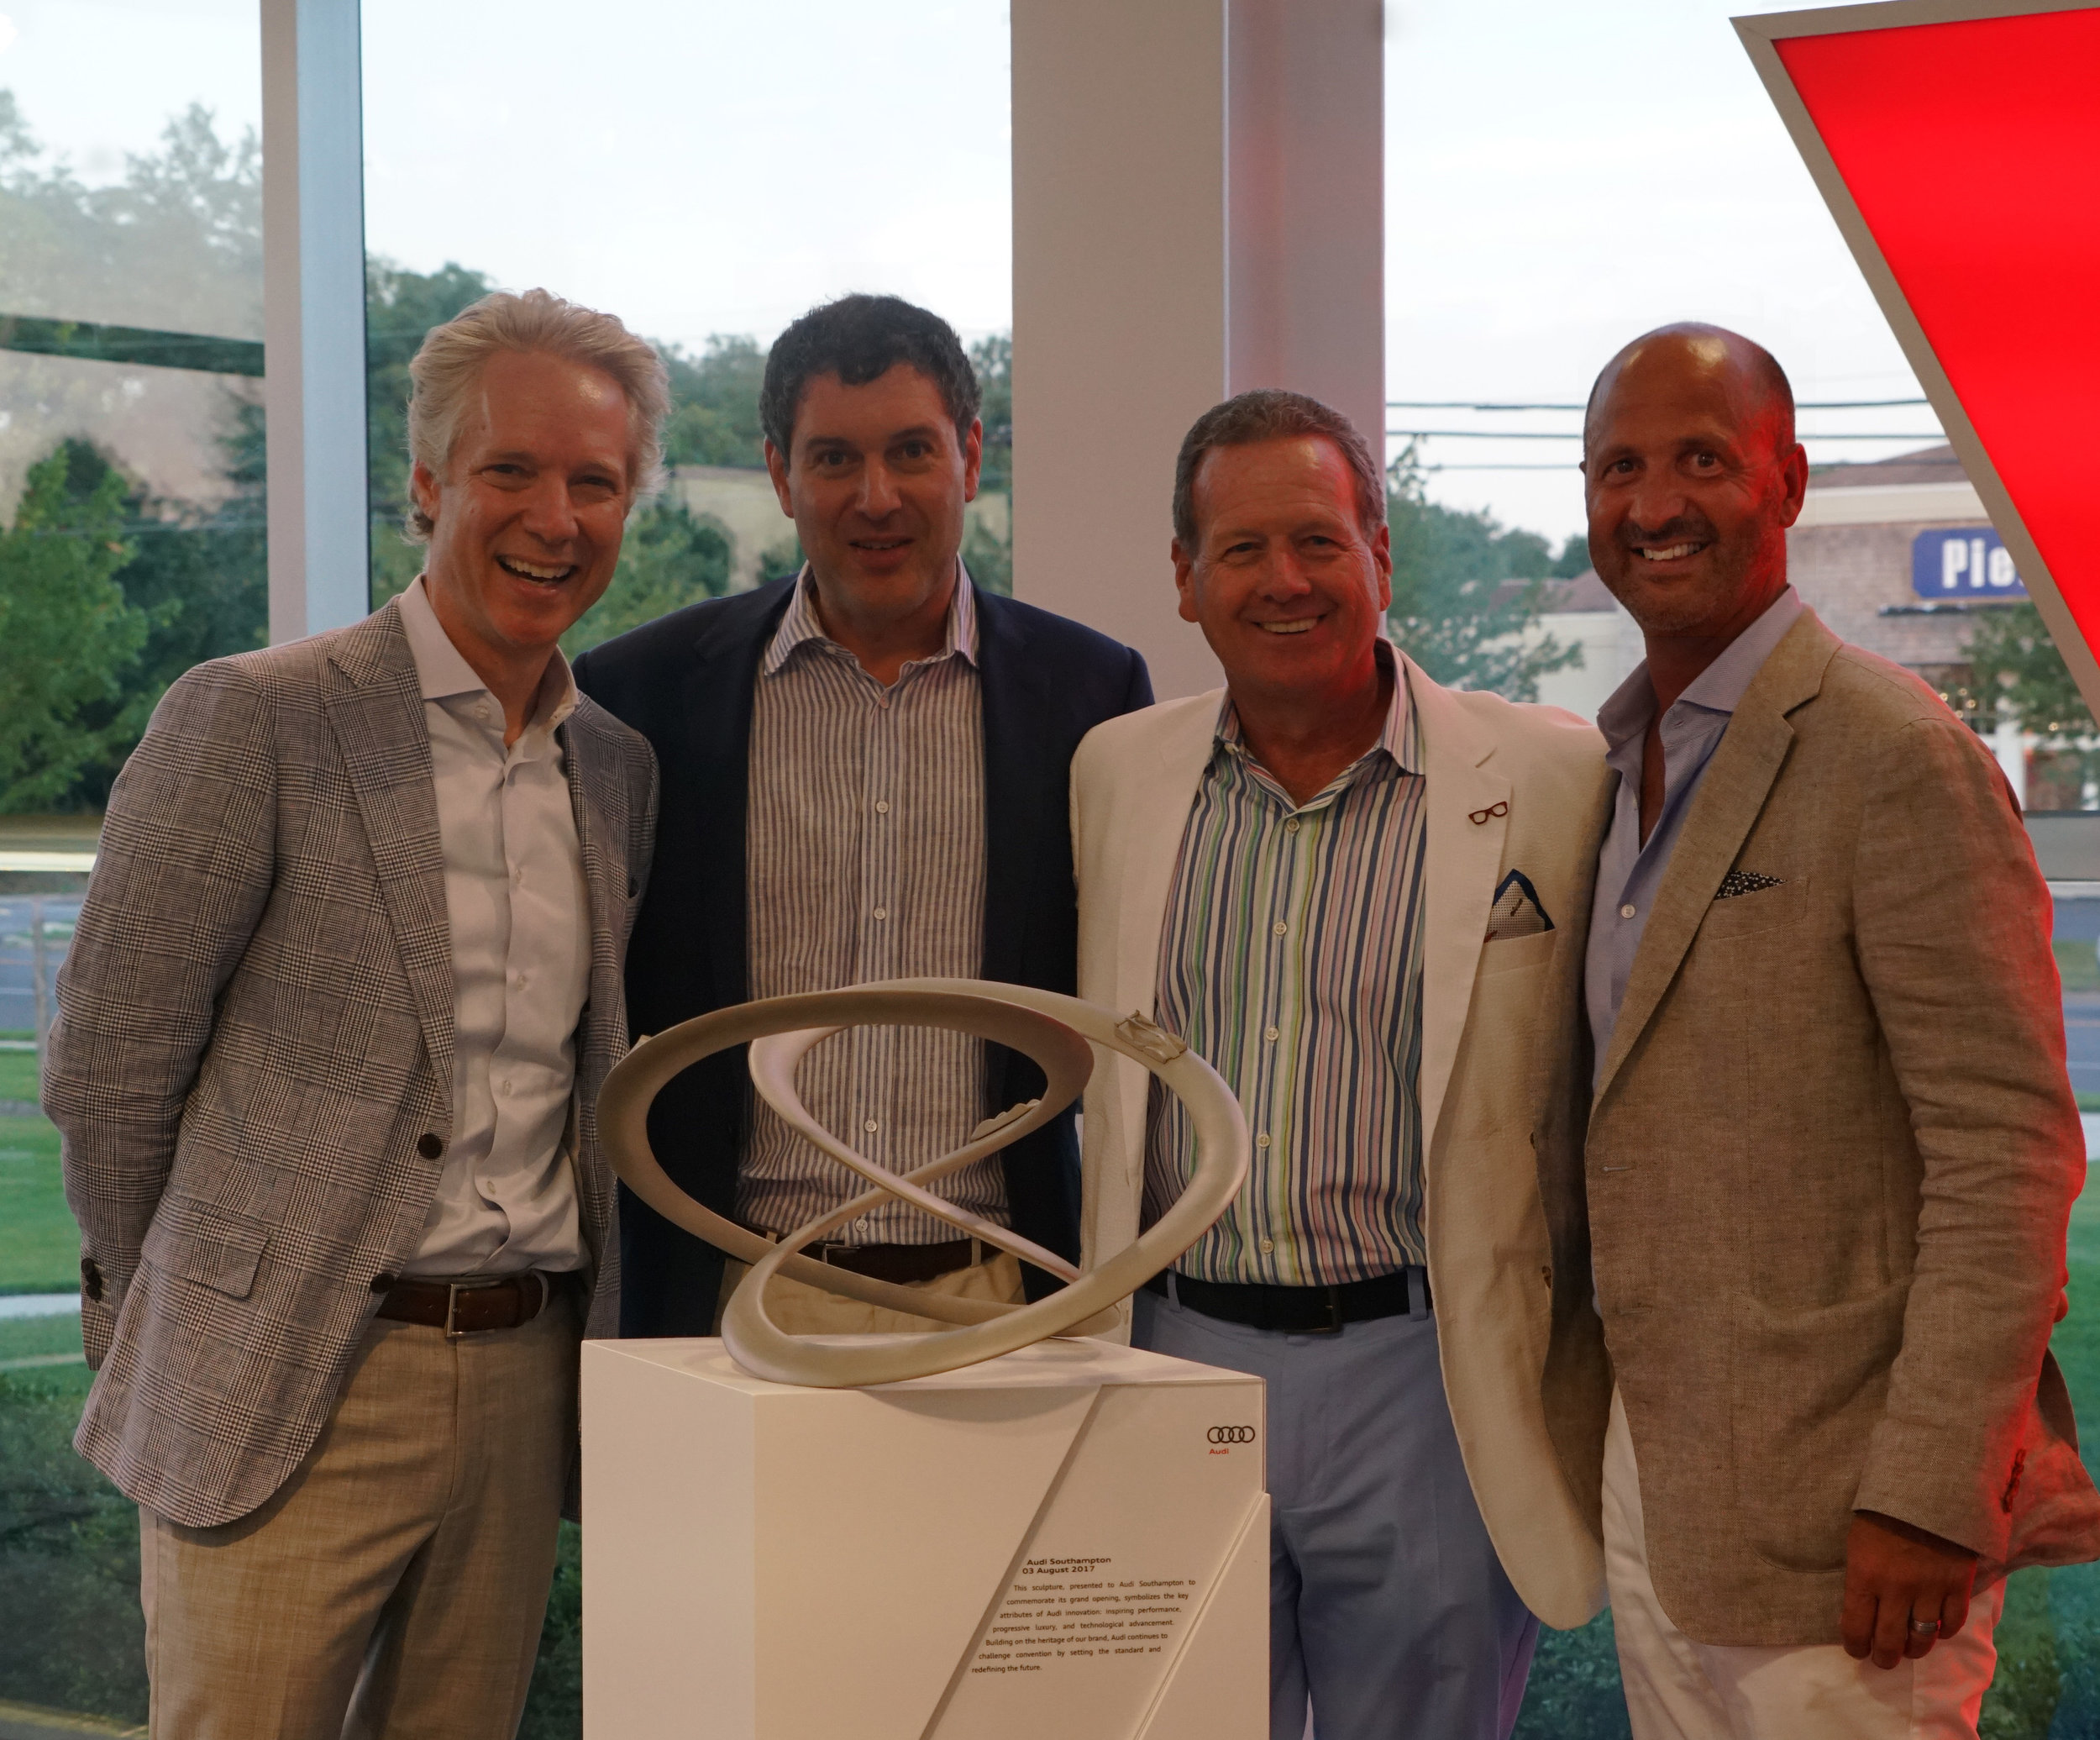 Audi President Scott Keogh presents honorary statue to commiserate the Grand Re-opening for @AudiSouthampton -